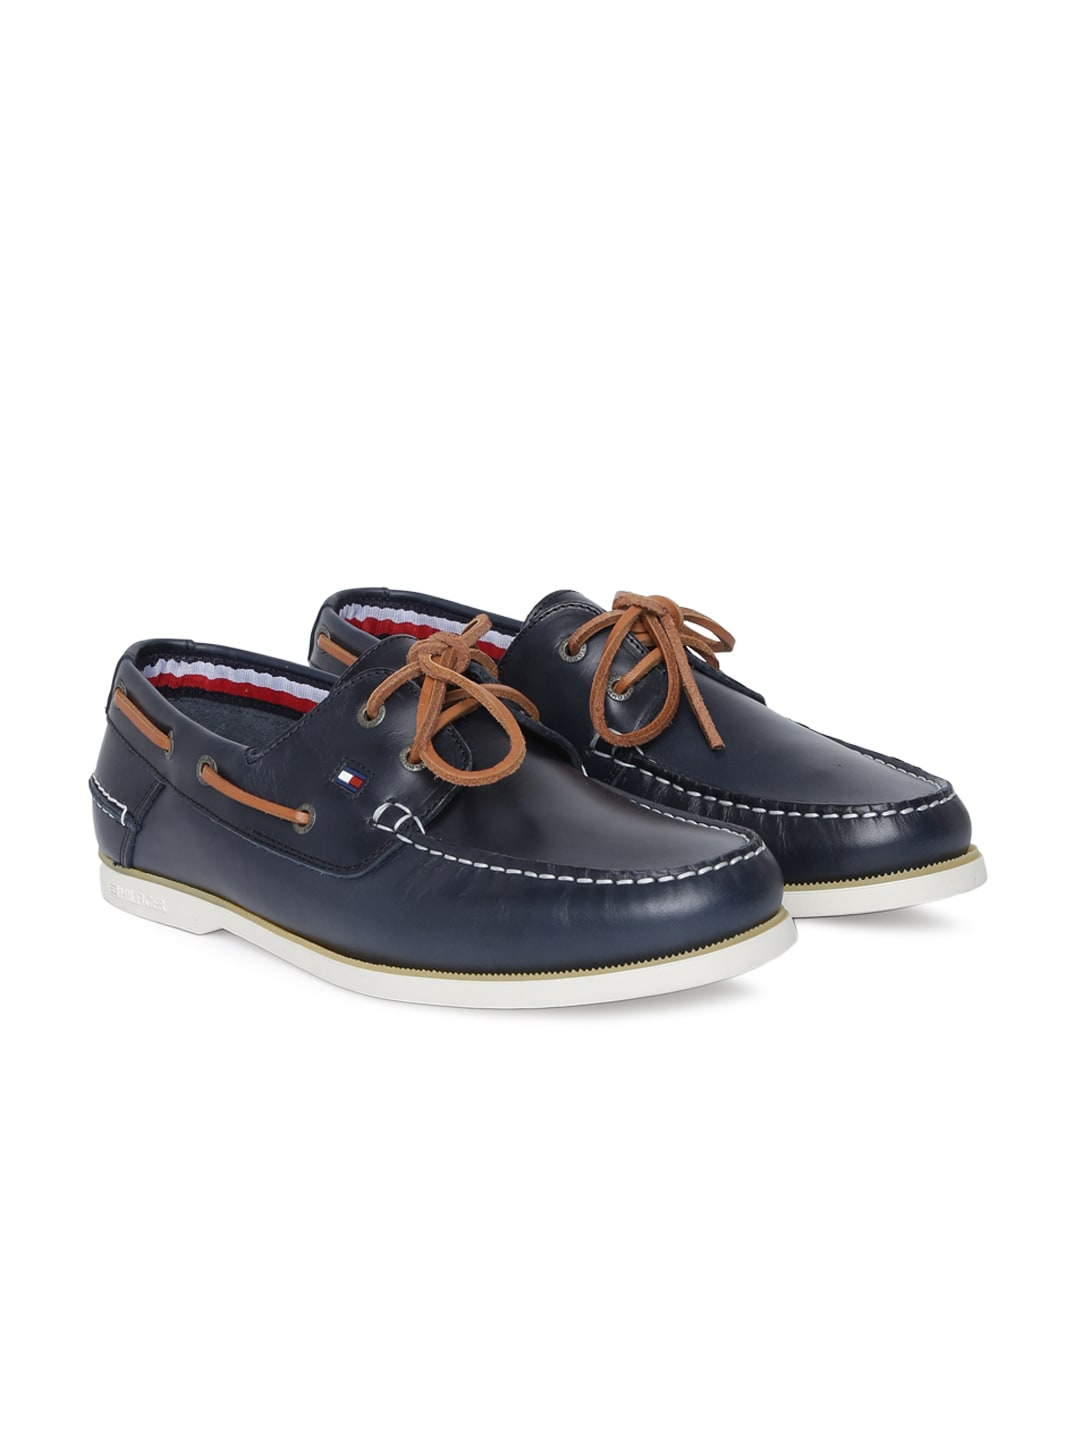 buy online aaa73 6dae0 Boat Shoes   Buy Boat Shoes For Men   Women Online in India